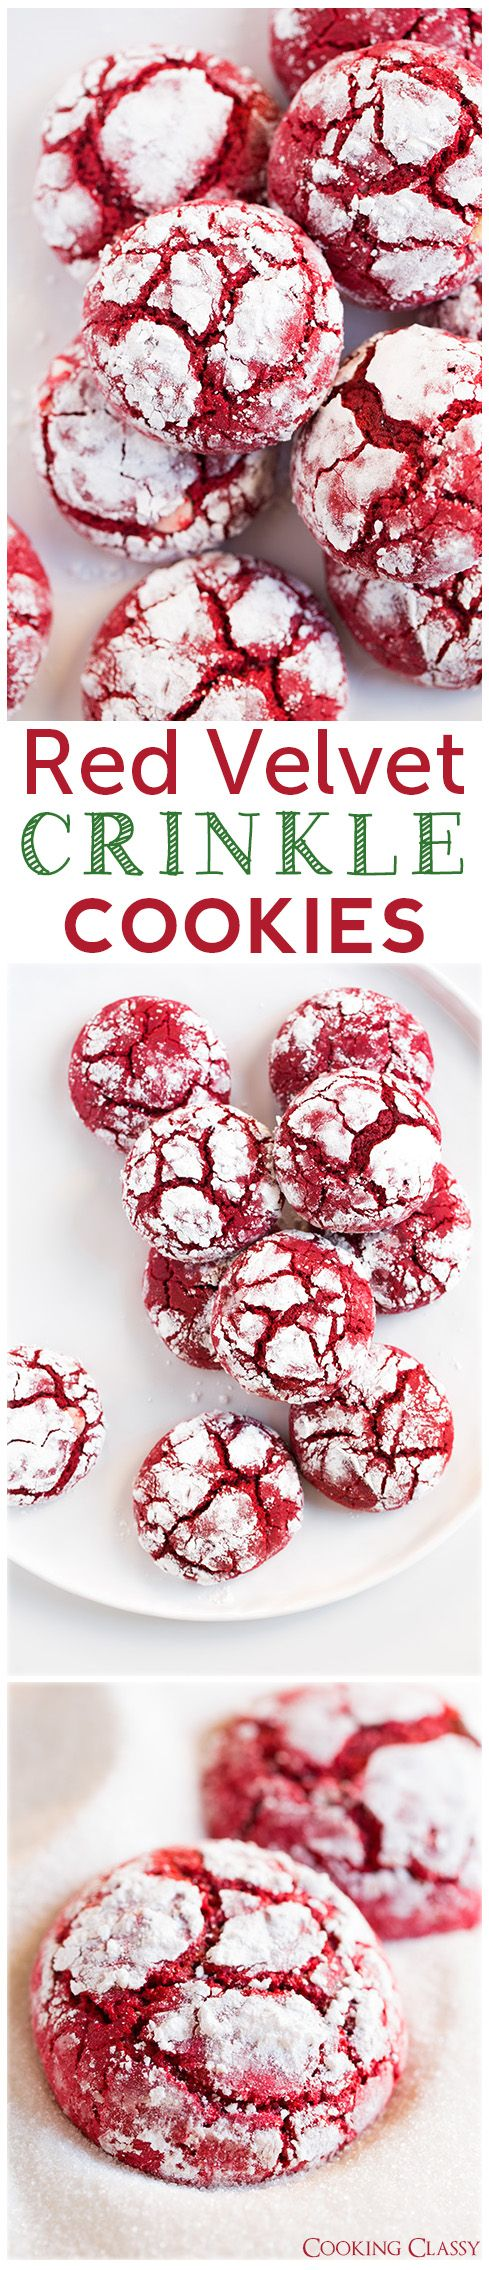 Red Velvet Crinkle Cookies (from scratch) - these cookies are DIVINE! Perfect Christmas cookie.